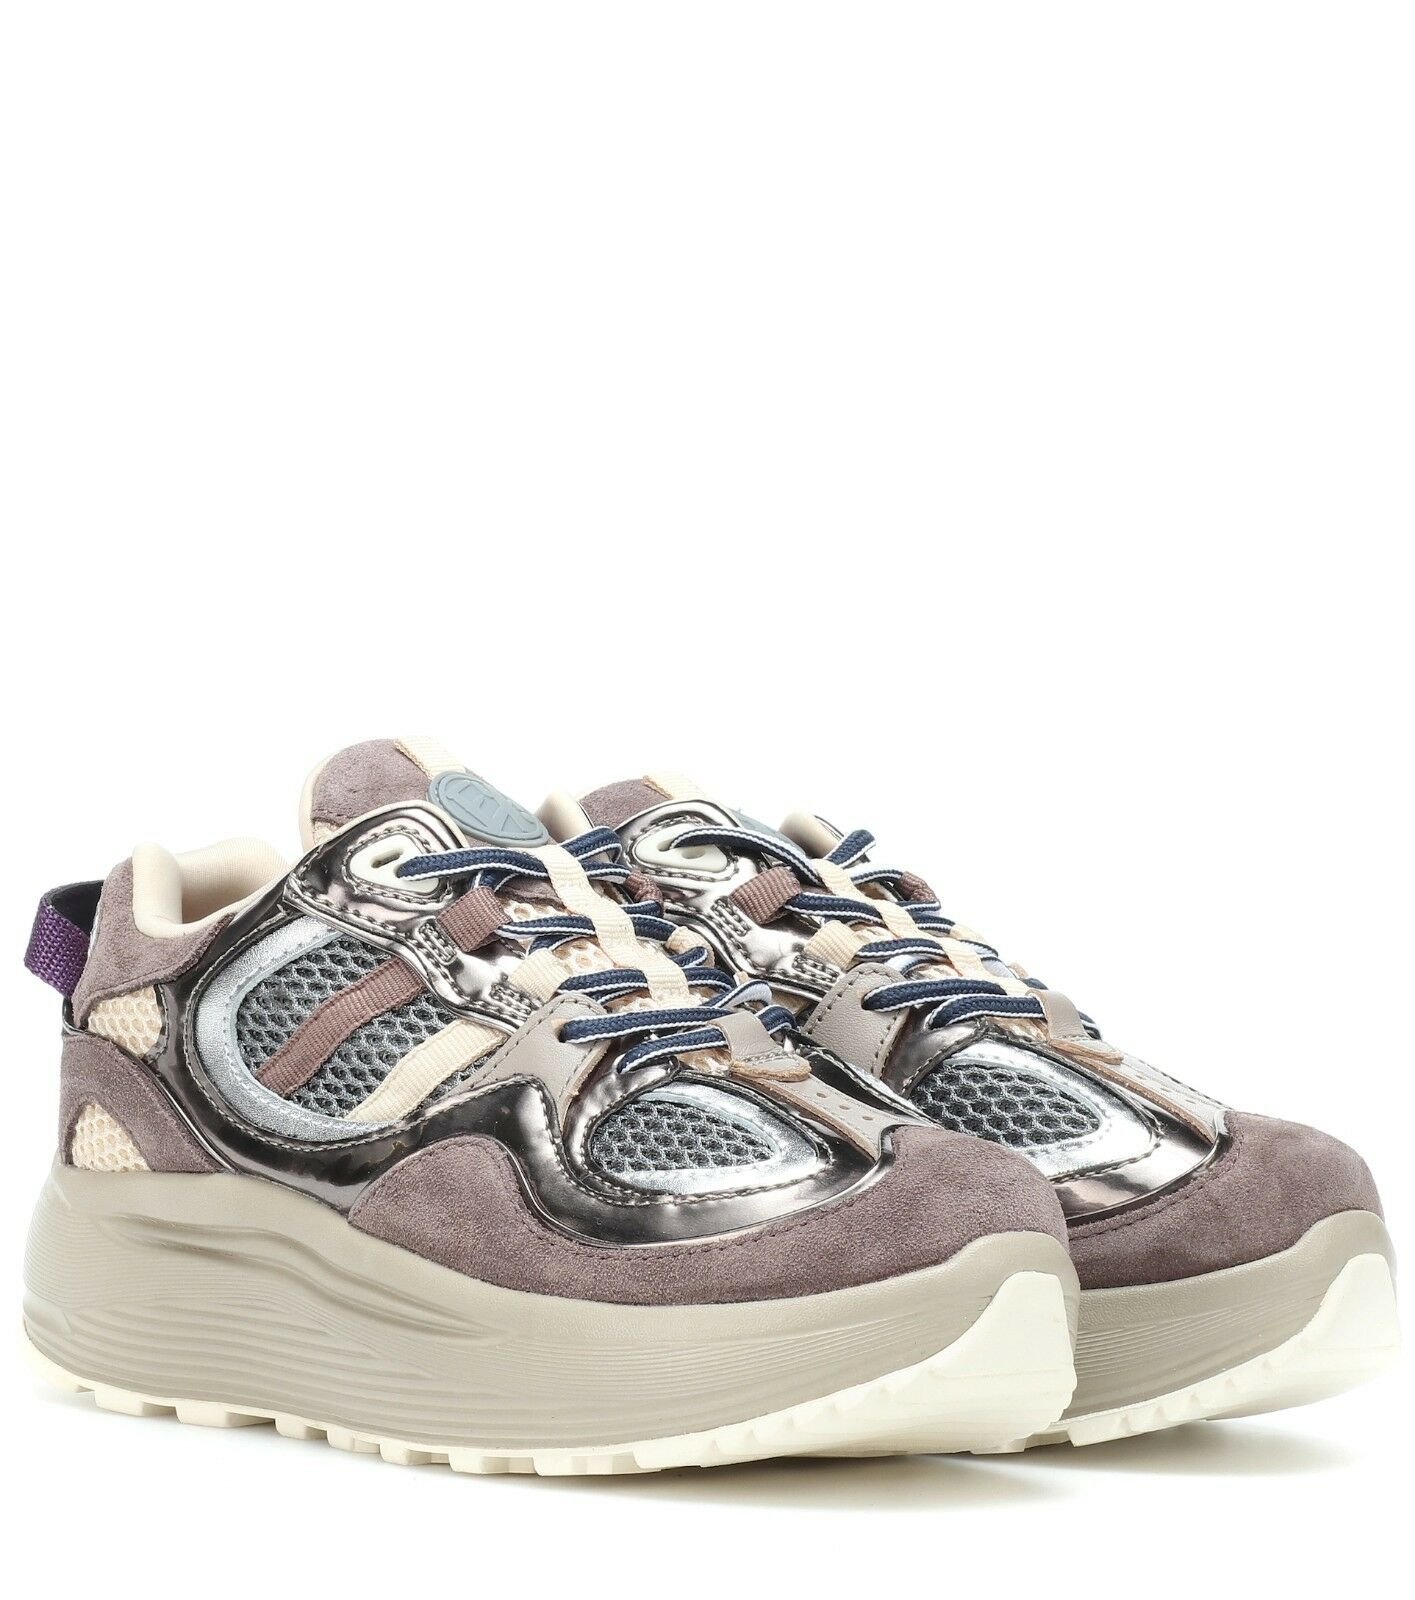 BRAND NEW EYTYS JET TURBO  SUEDE AND LEATHER SNEAKERS IN IRON SIZE 39 UK6